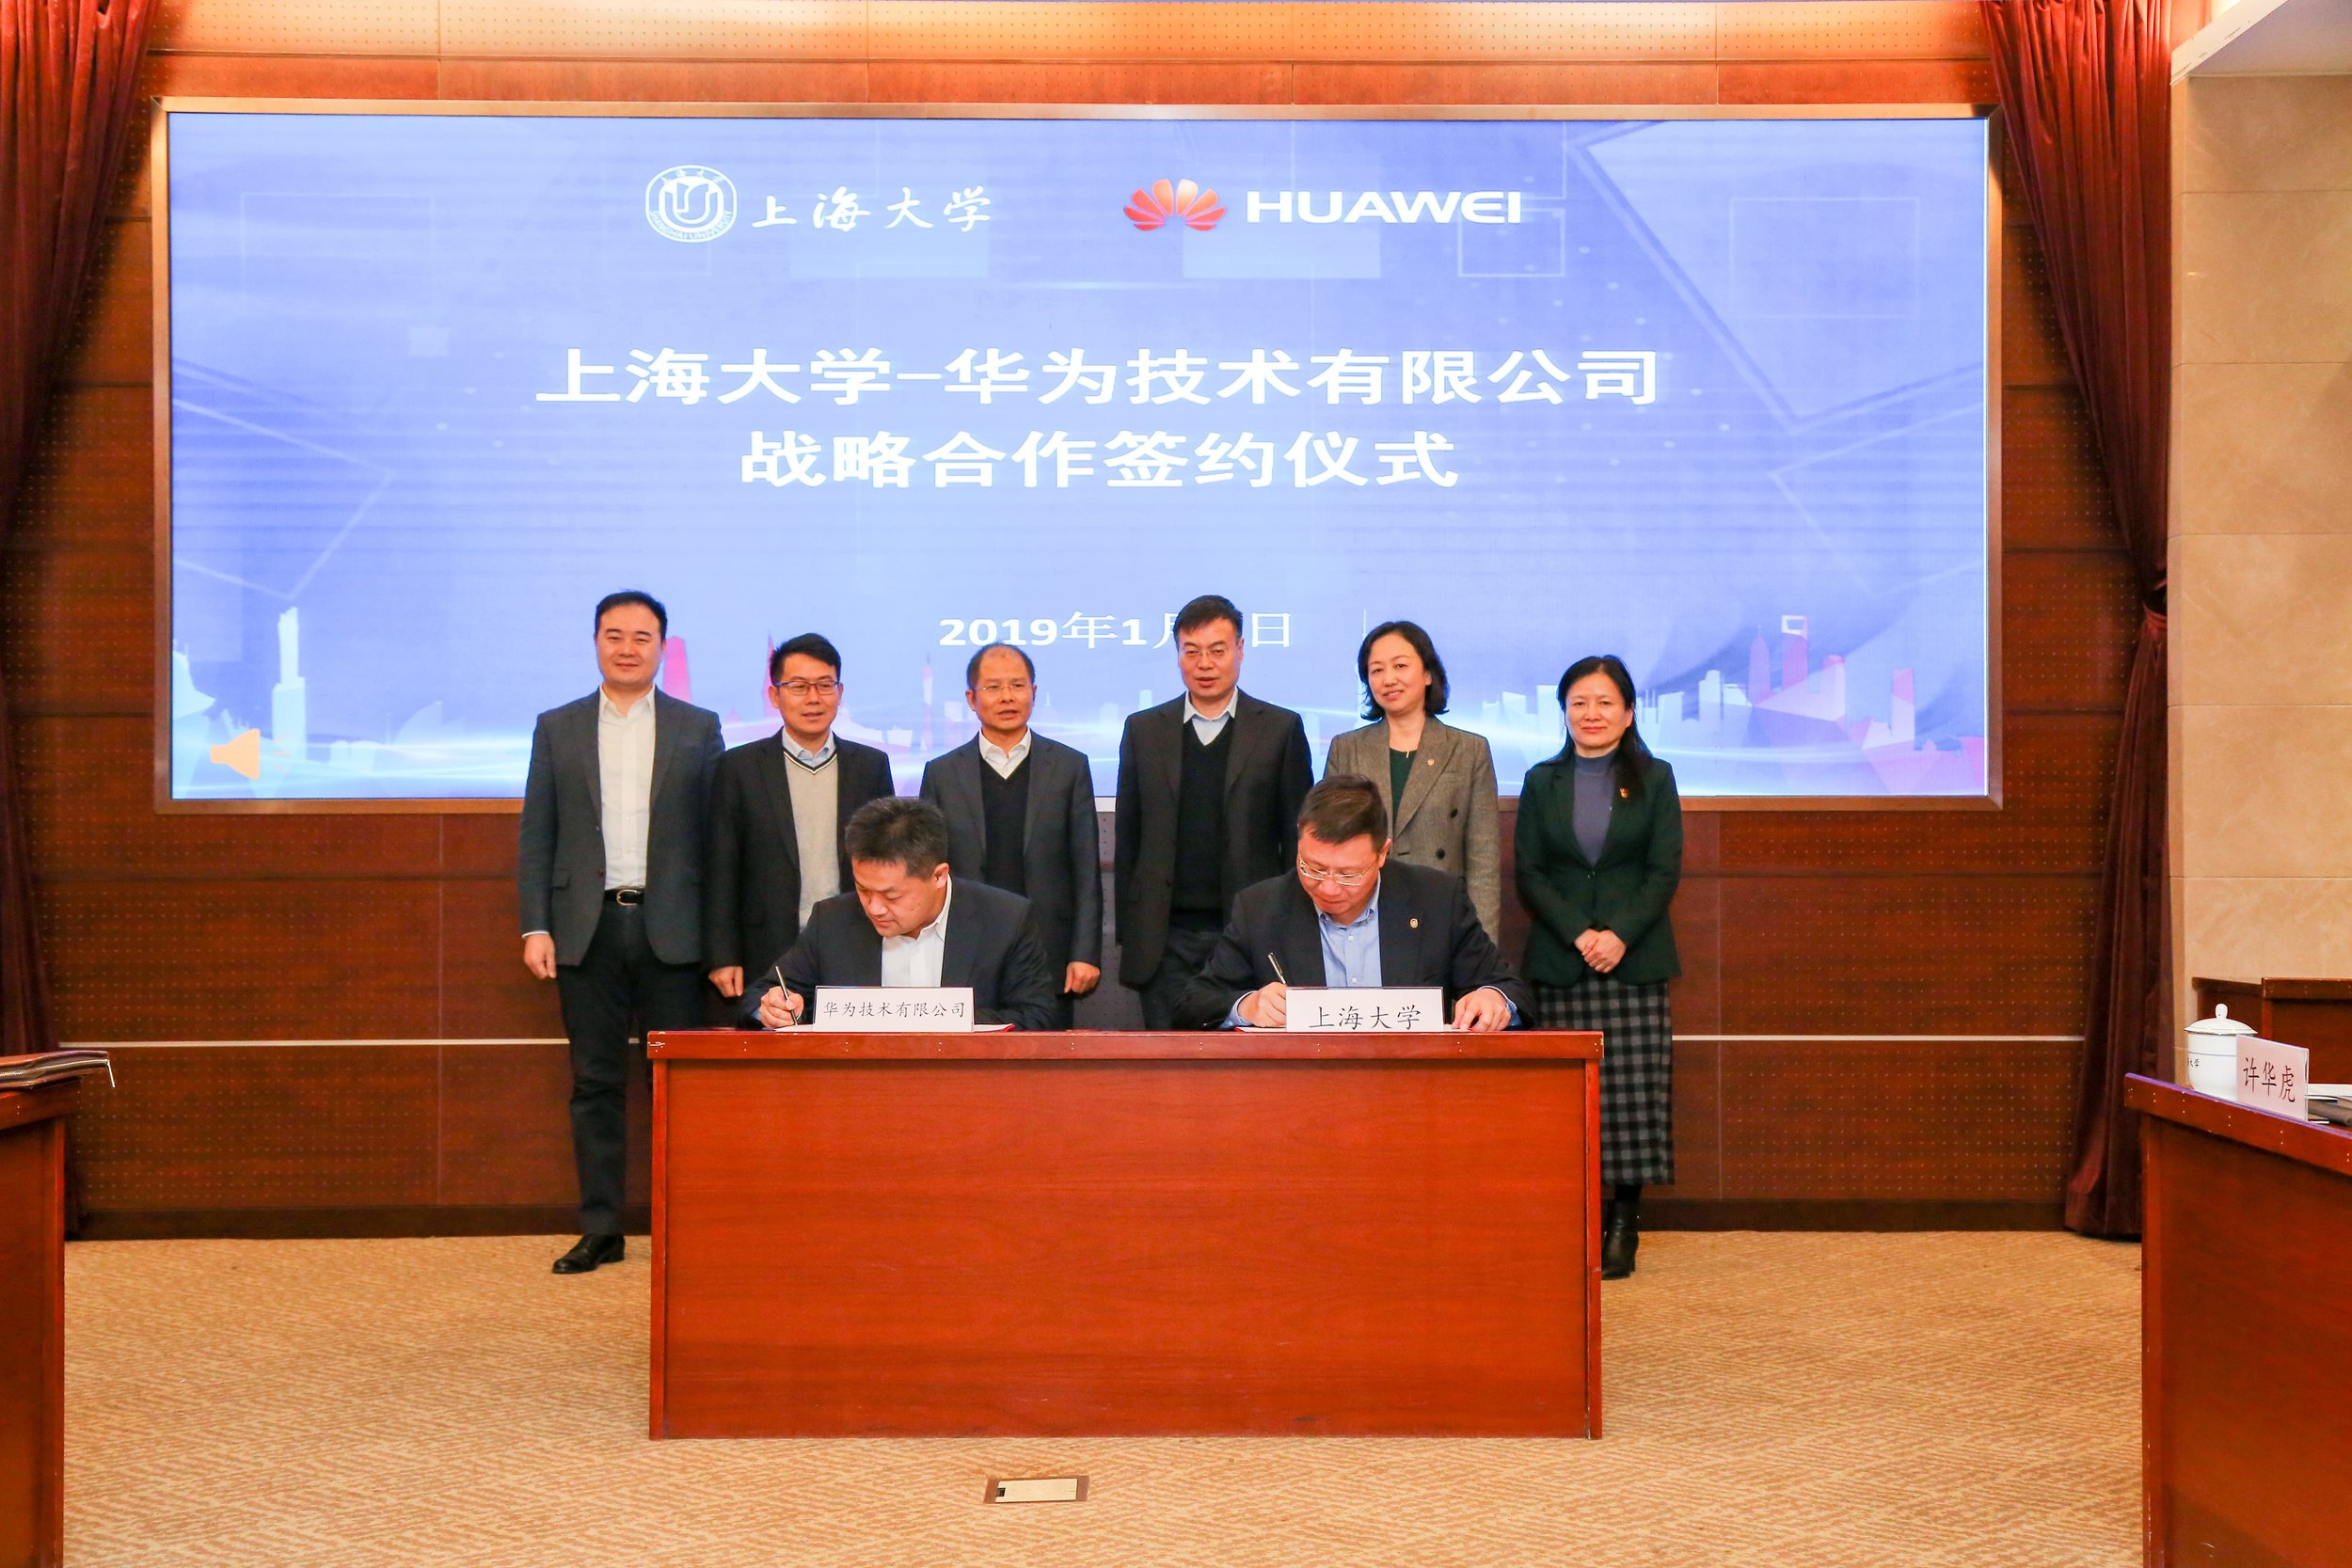 Strategic Cooperation Between Huawei and Shanghai University.